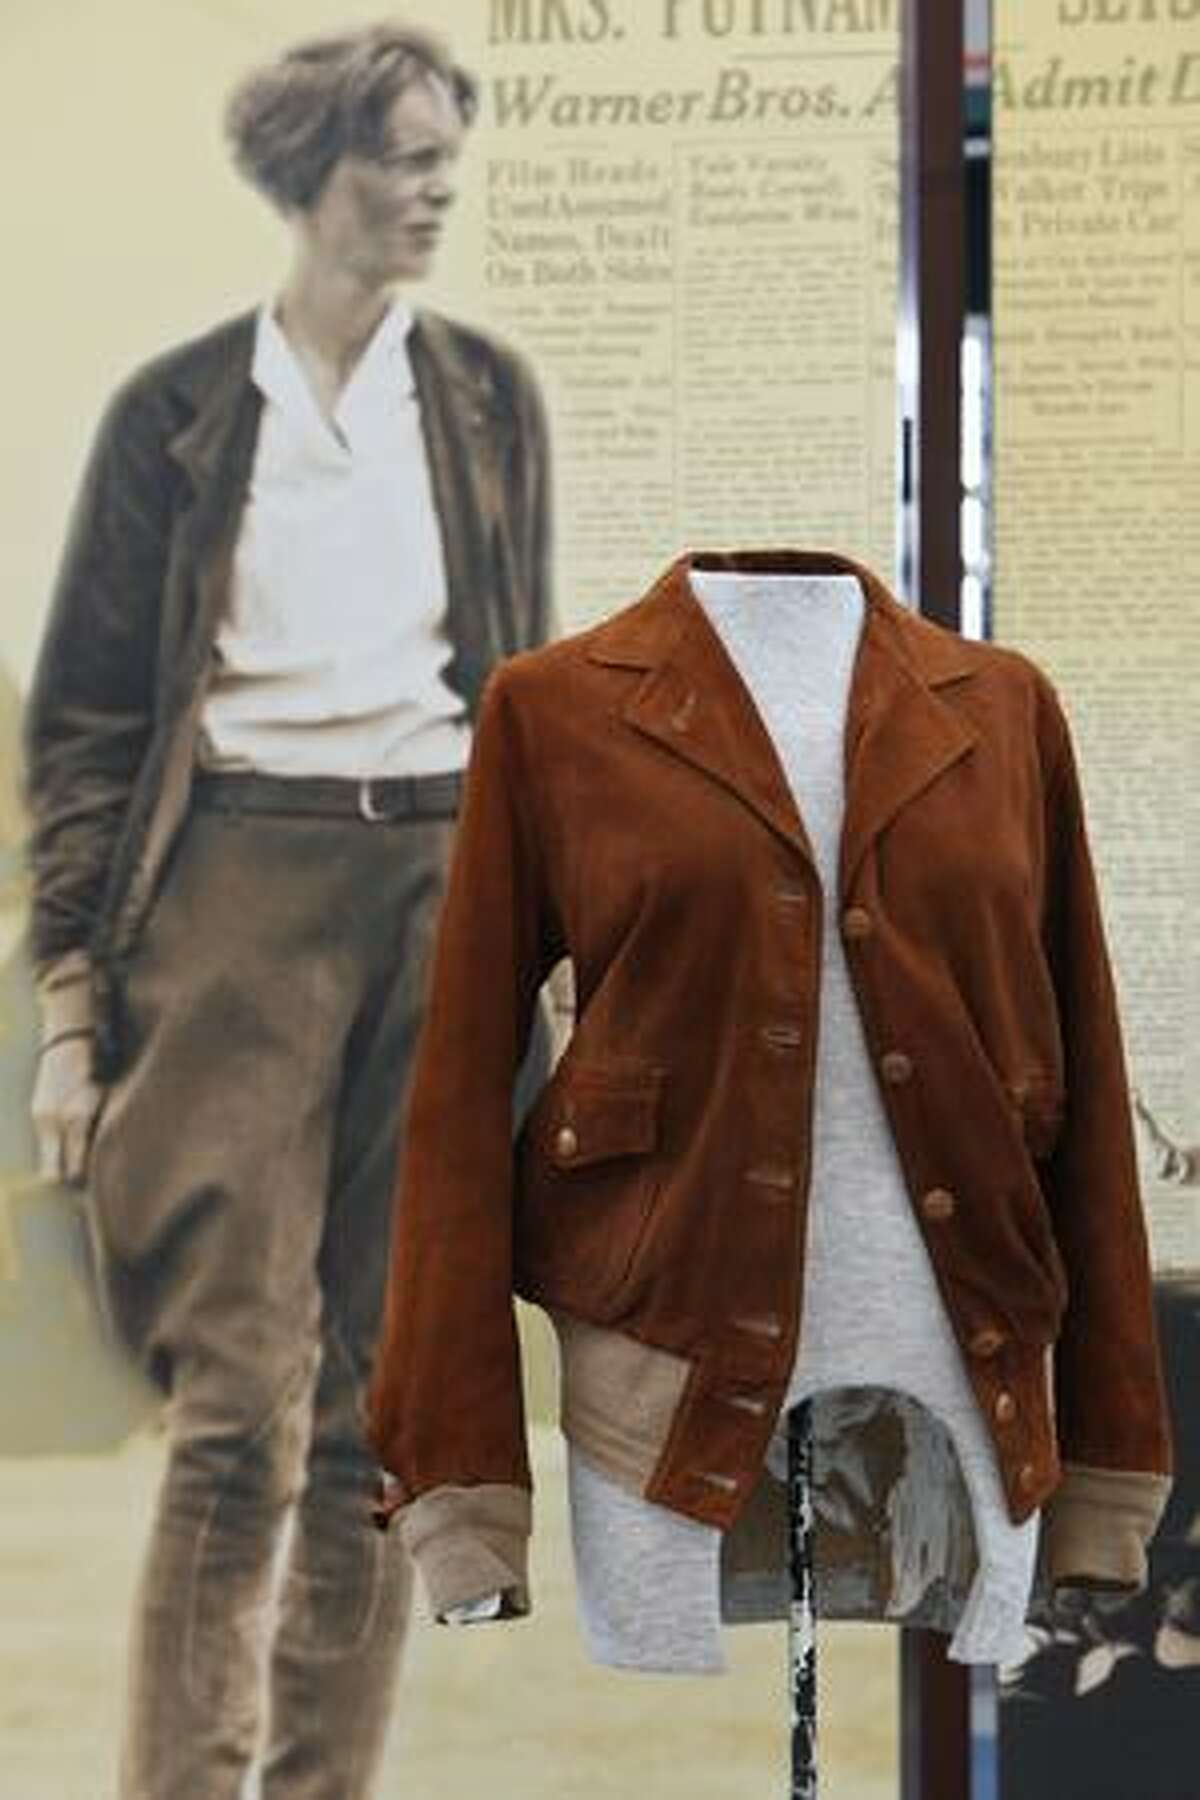 This jacket, on loan from Purdue University, is one of several Earthart artifacts that will go on display at The Museum of Flight on Otober 24, 2009.